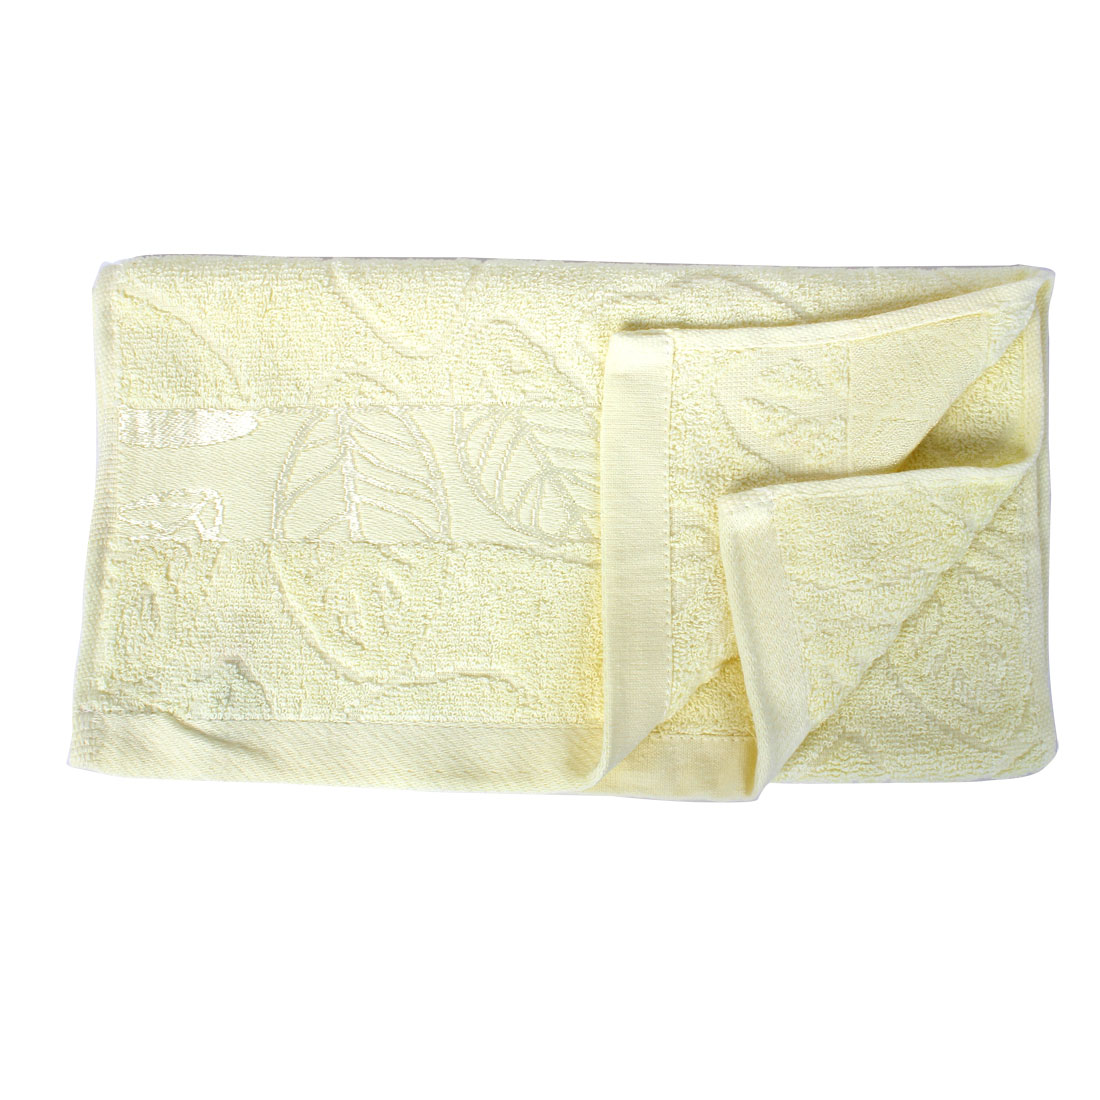 Terrycloth Leaves Pattern Drying Shower Bath Towel 72cm x 33cm Beige